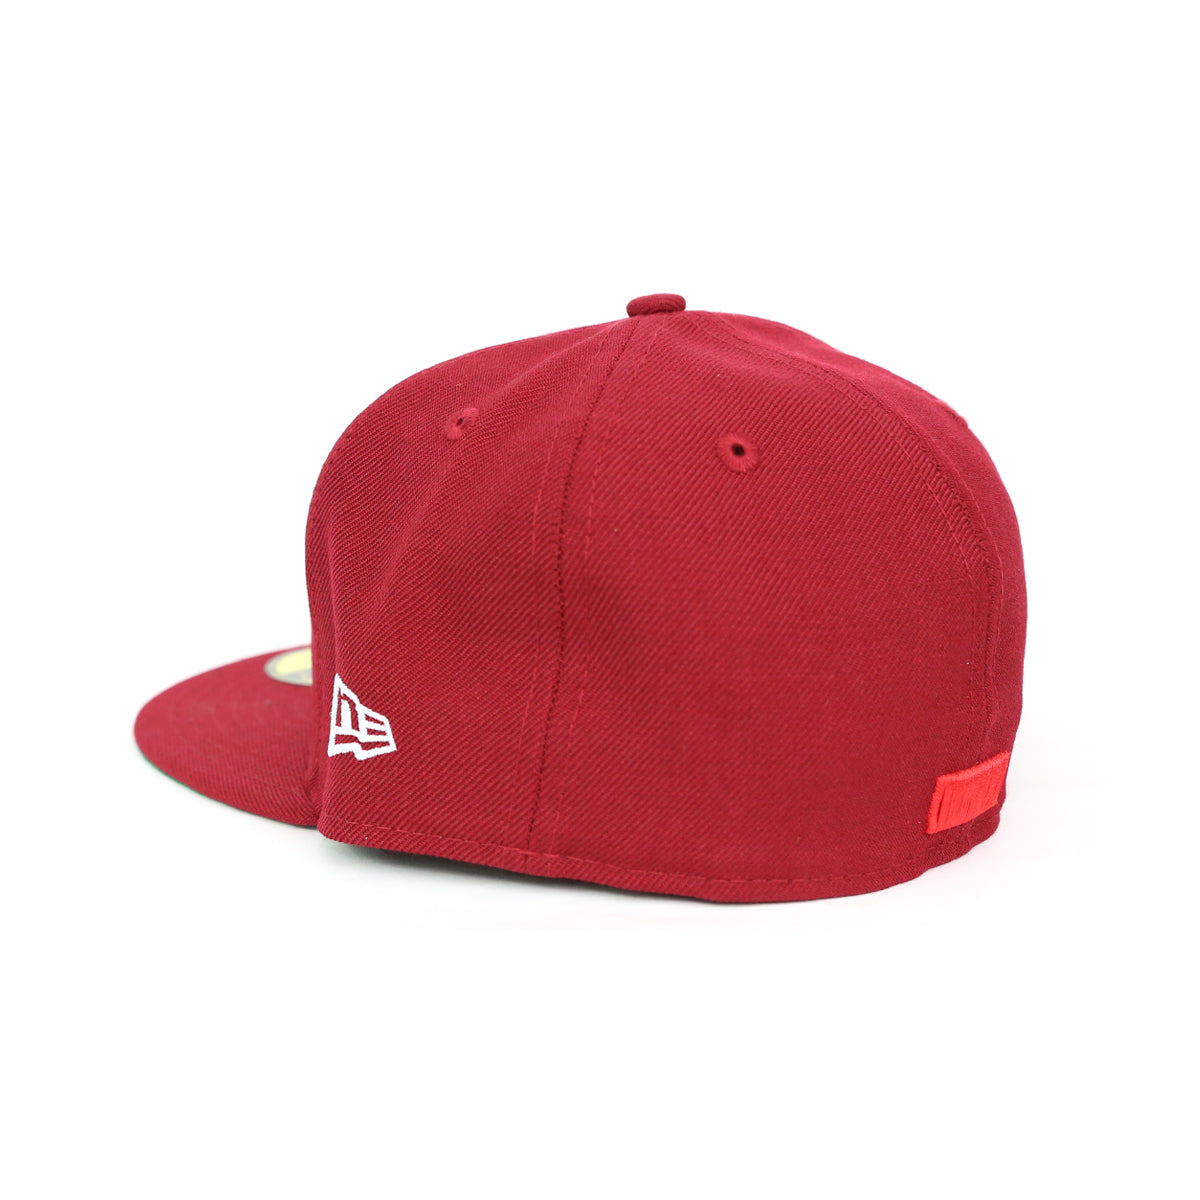 STAPLE LL NEW ERA 59FIFTY CAP [BURGUNDY]